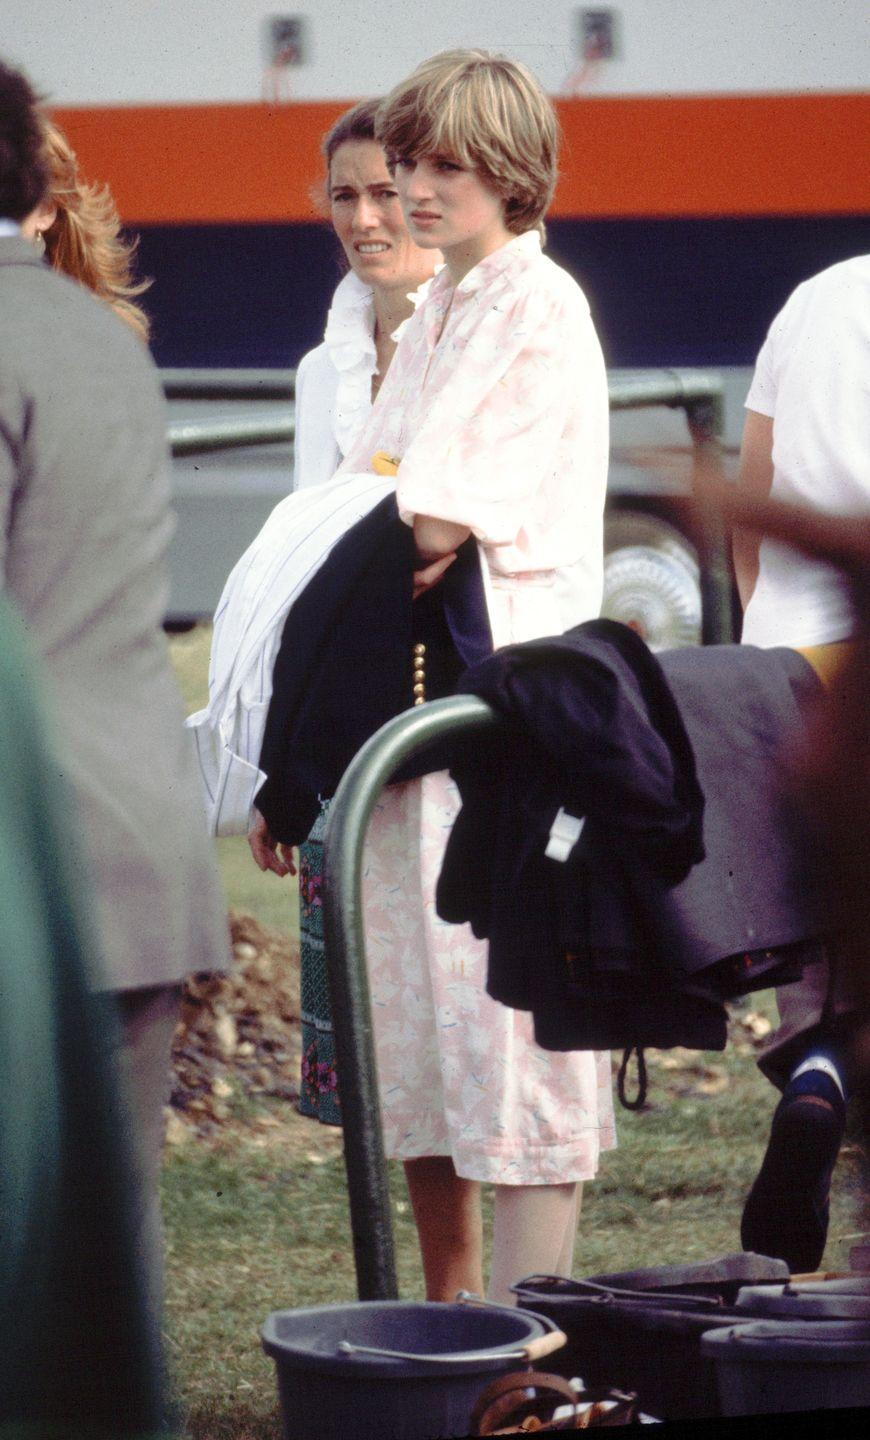 <p>Princess Diana watches from the sidelines as Prince Charles partakes in a polo match in 1981. </p>